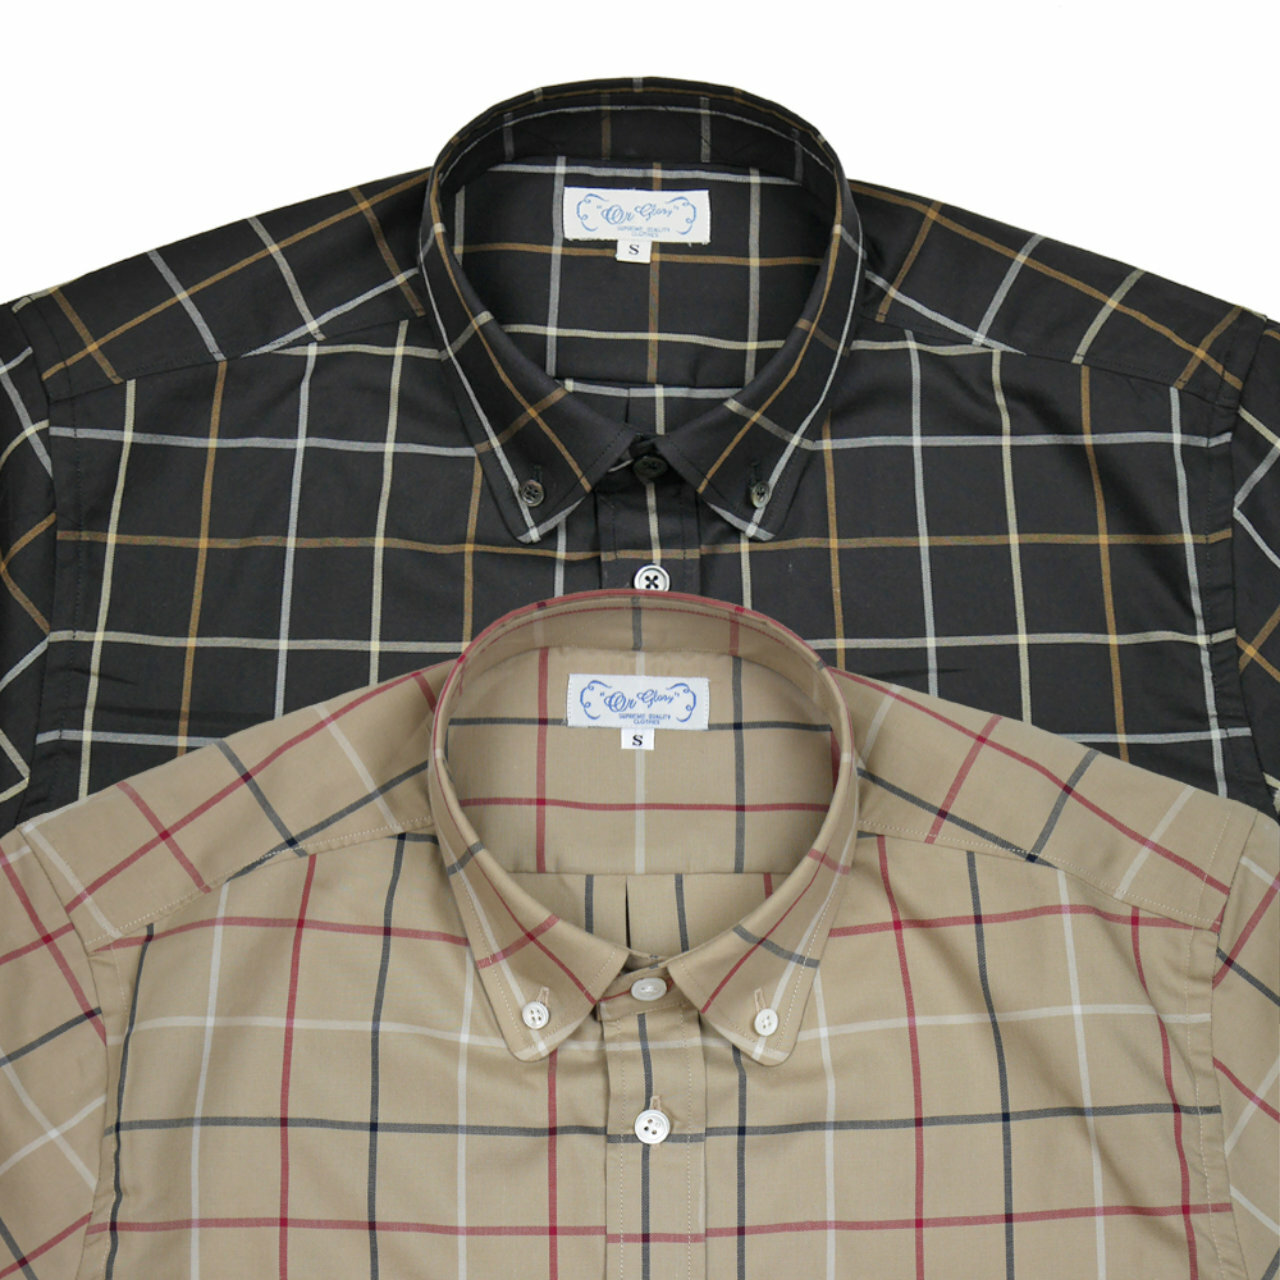 Round B.D windowpane Shirts 【OR GLORY】